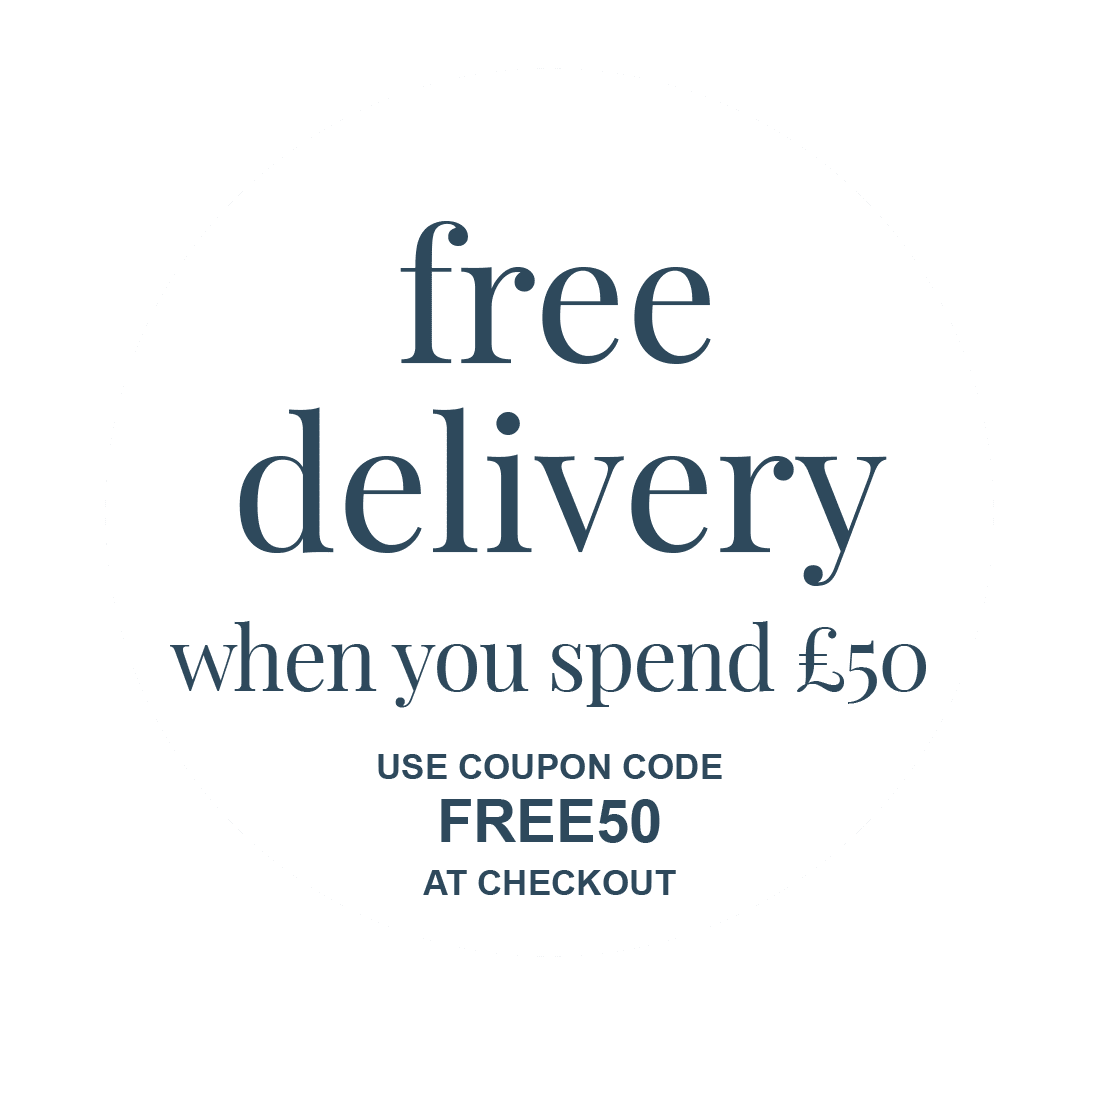 Free delivery when you spend £50 - Use coupon code FREE50 at checkout